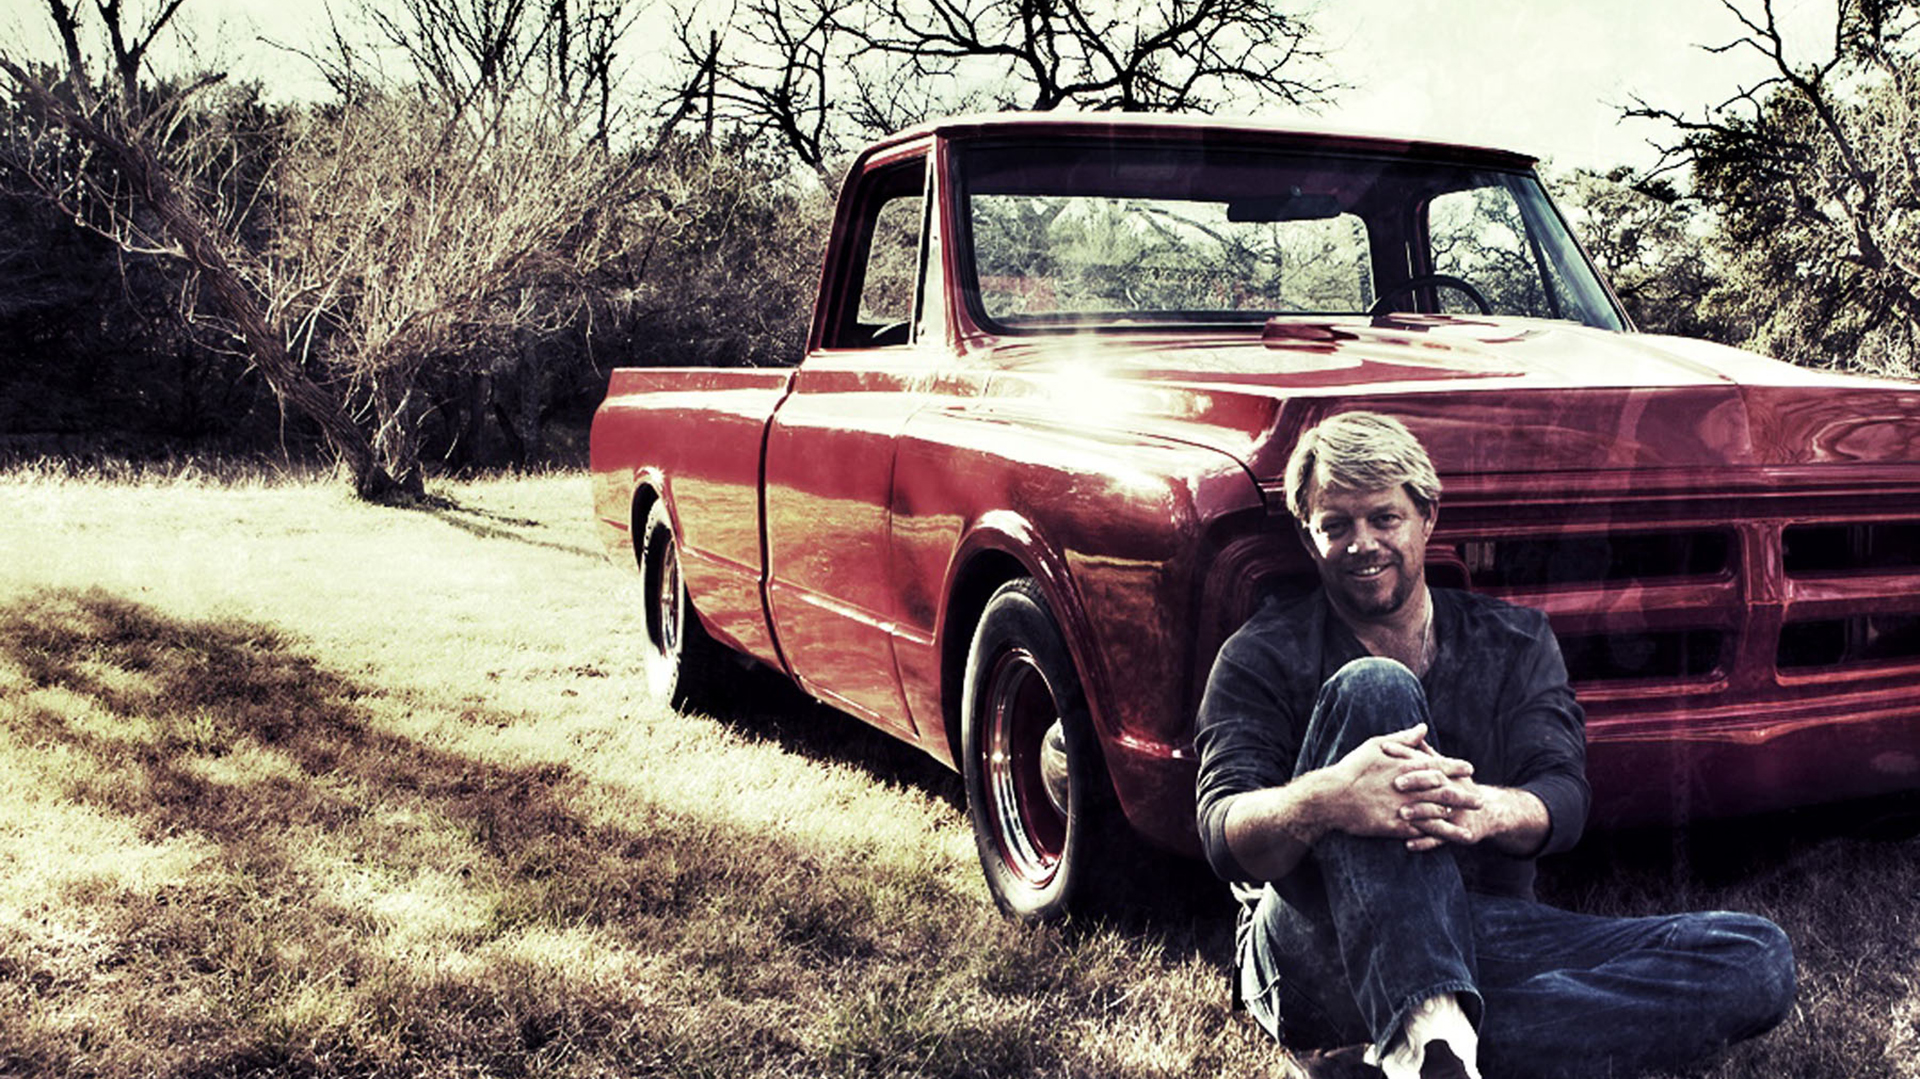 Pat Green's in a nostalgic frame of mind ahead of July 3 show in Canyon